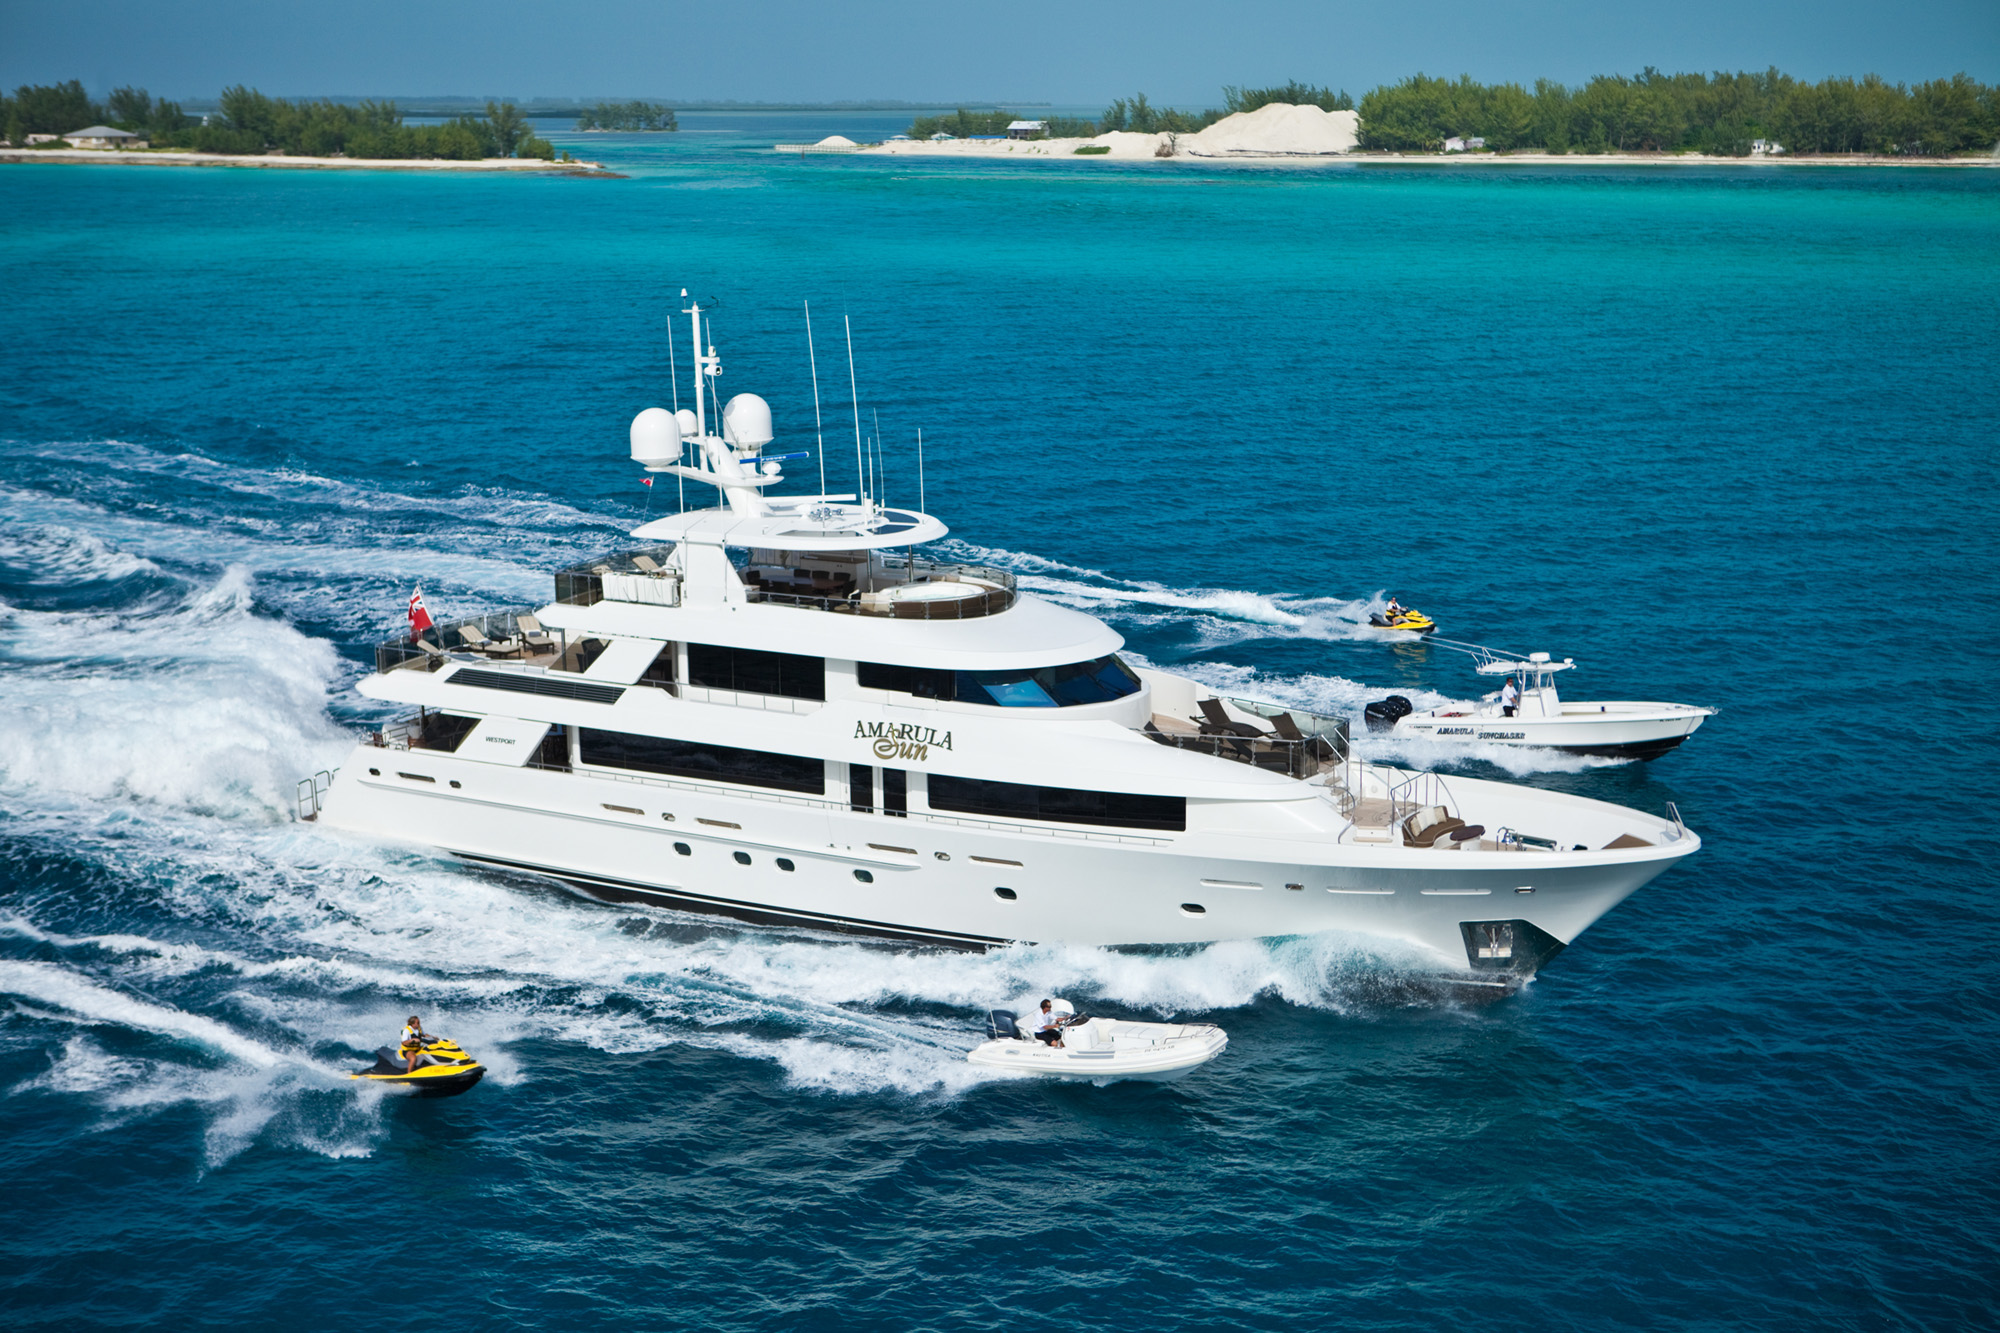 Yacht AMARULA SUN in the Bahamas